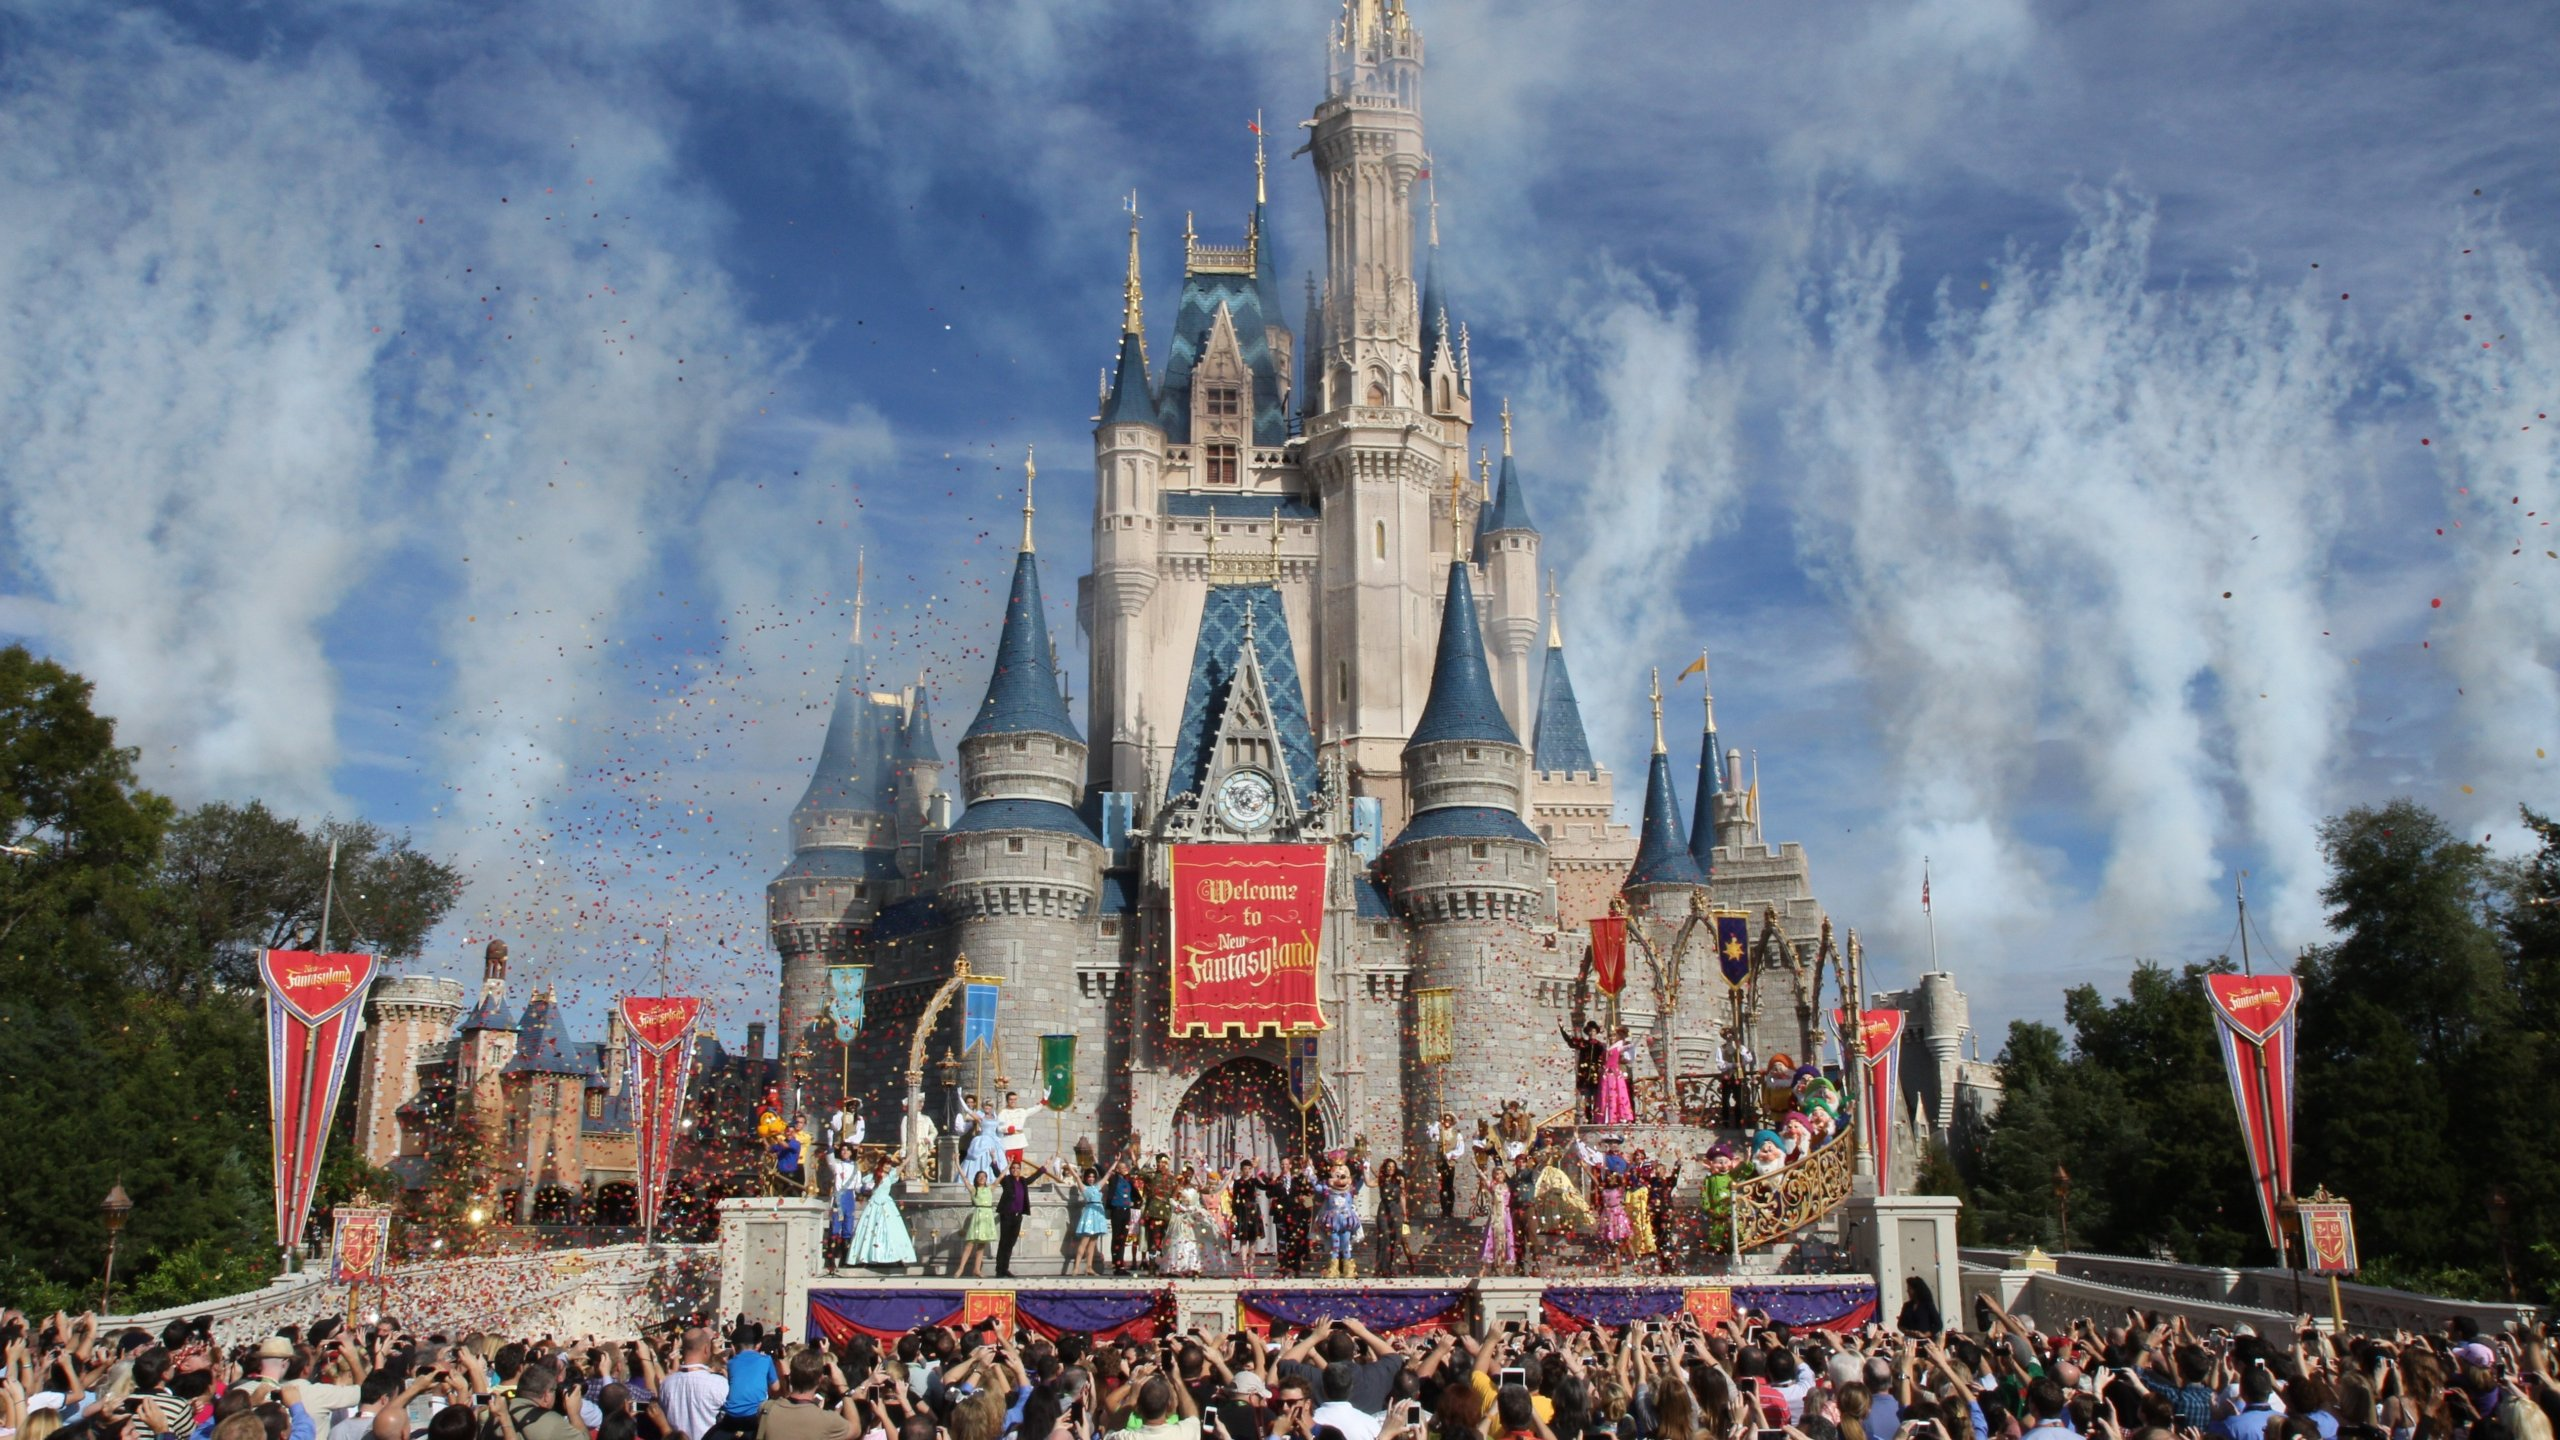 Disney World patrons watch the grand opening ceremony of the new Fantasyland expansion on December 6, 2012. (Credit: CNN)